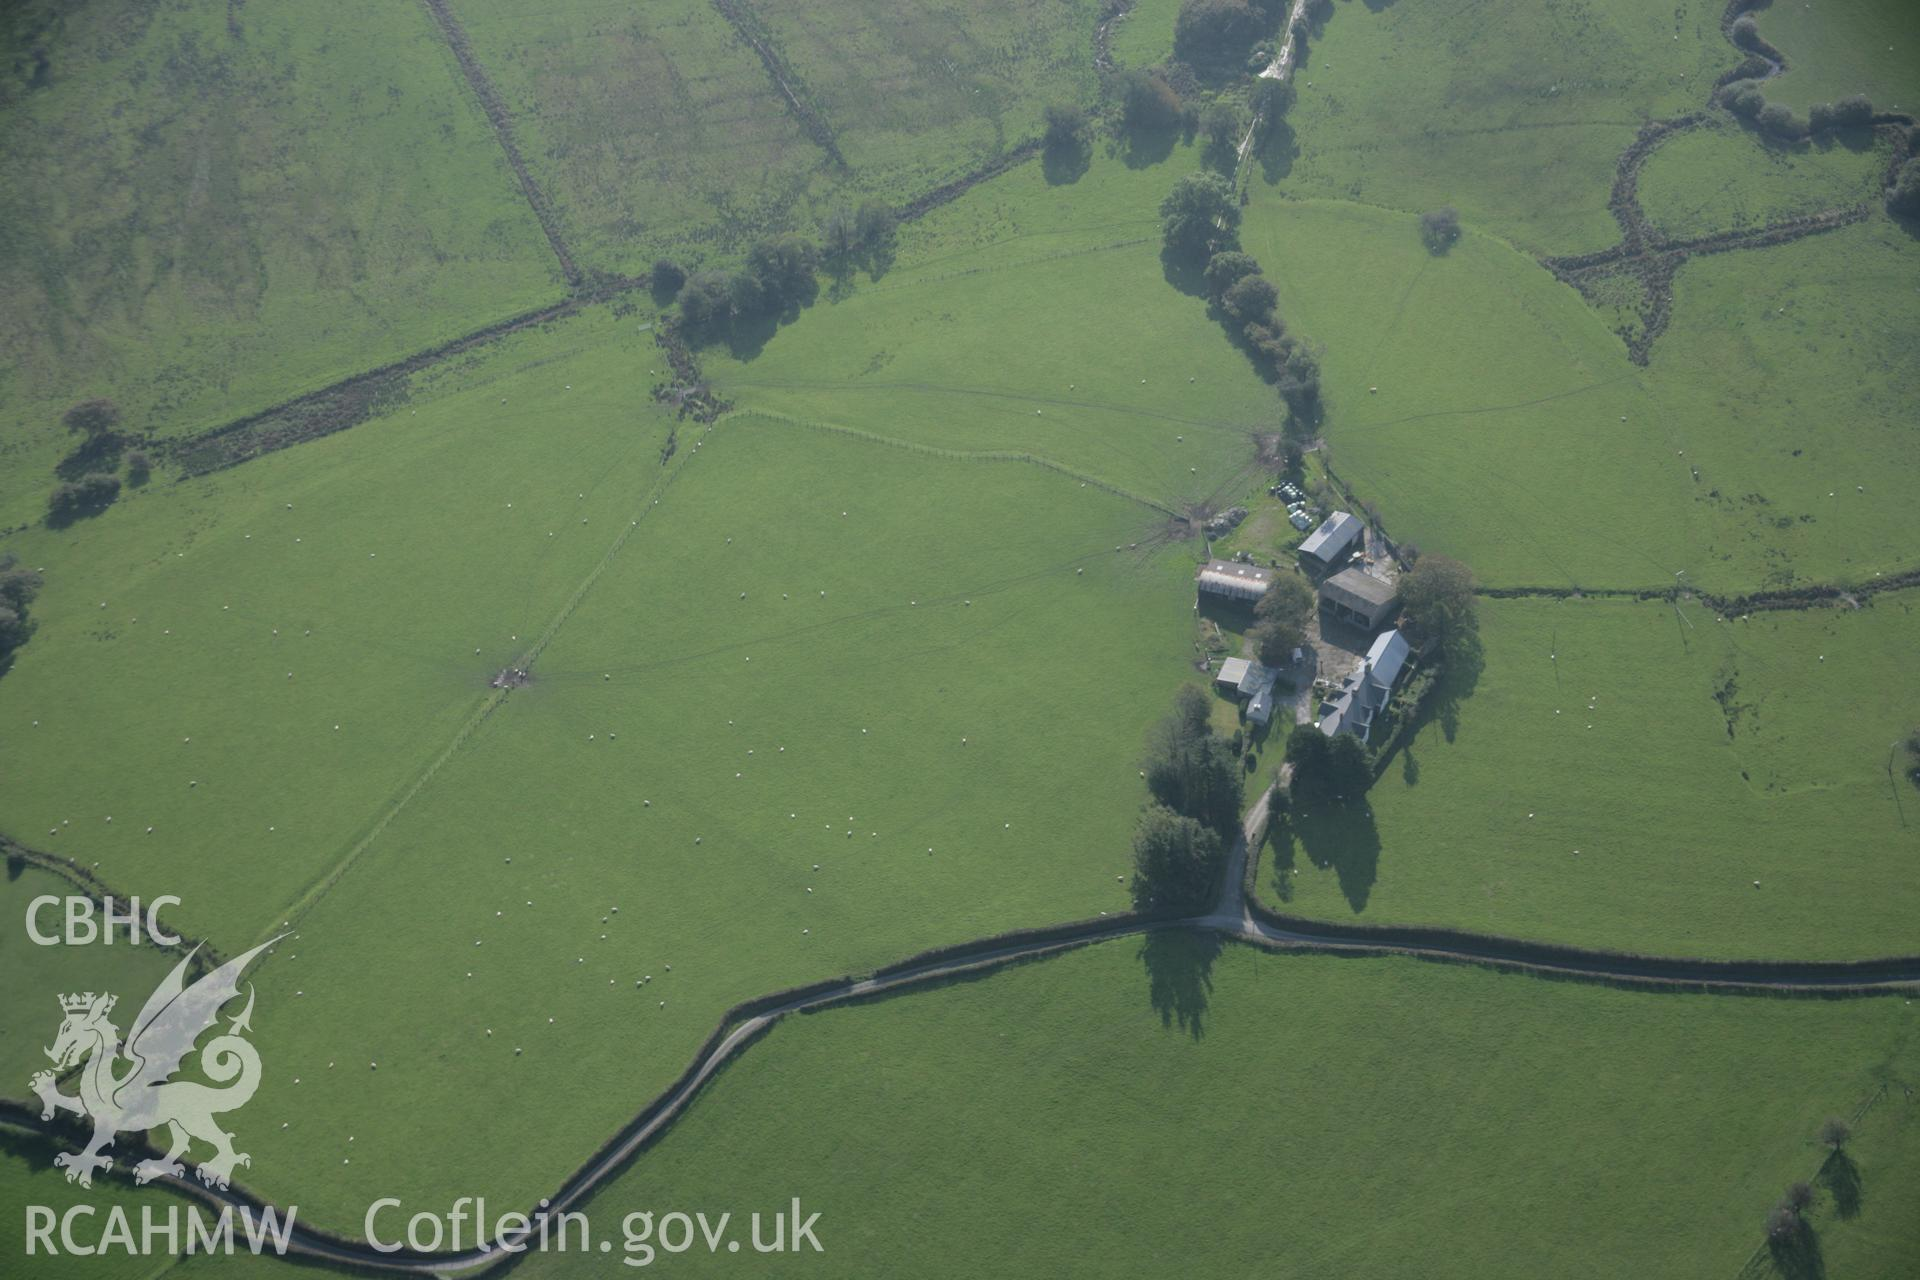 RCAHMW colour oblique aerial photograph of Cefn Caer Roman Fort, Pennal, from the north-east. Taken on 17 October 2005 by Toby Driver